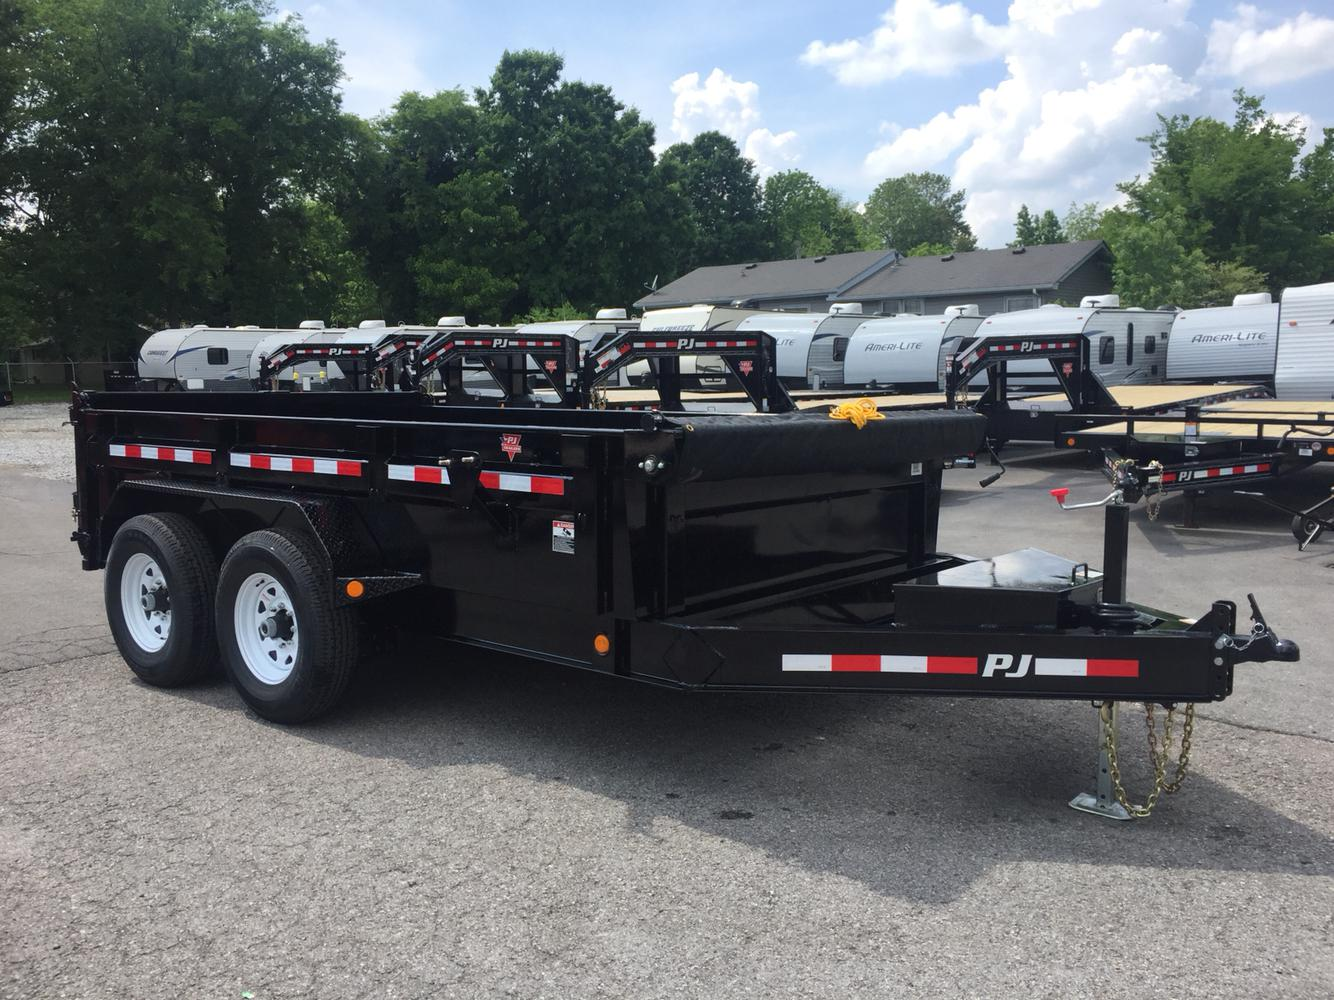 2019 Pj Trailers 12 Dl Low Pro Dump Trailer W Tarp Kit Spare Tire Rims Wiring Diagram Previous